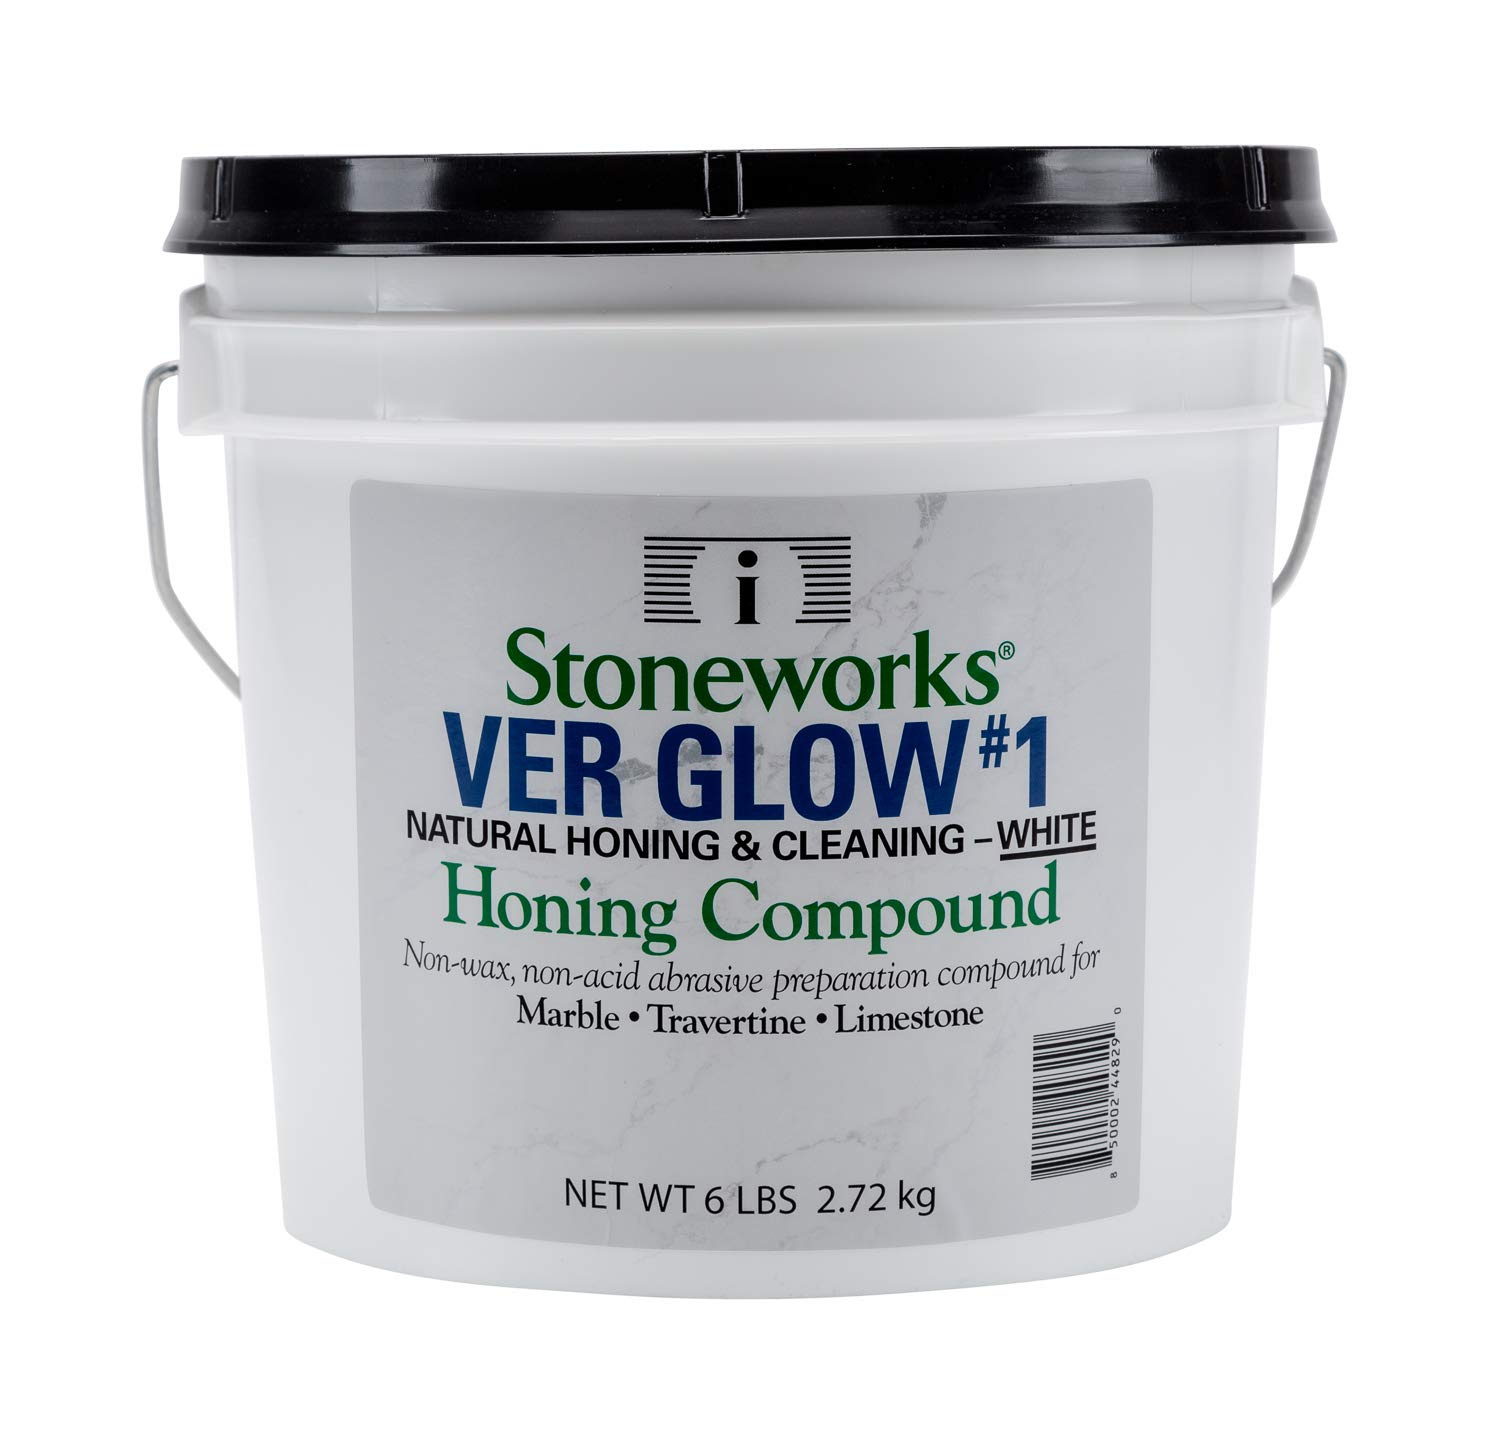 Ver Glow #1 White (6 Lb) Natural Non-Wax, Non-Acid Abrasive Compound for The Thorough Honing and Cleaning of Older and/or Worn Marble, Travertine, Limestone, Terrazzo and Other Natural Stones